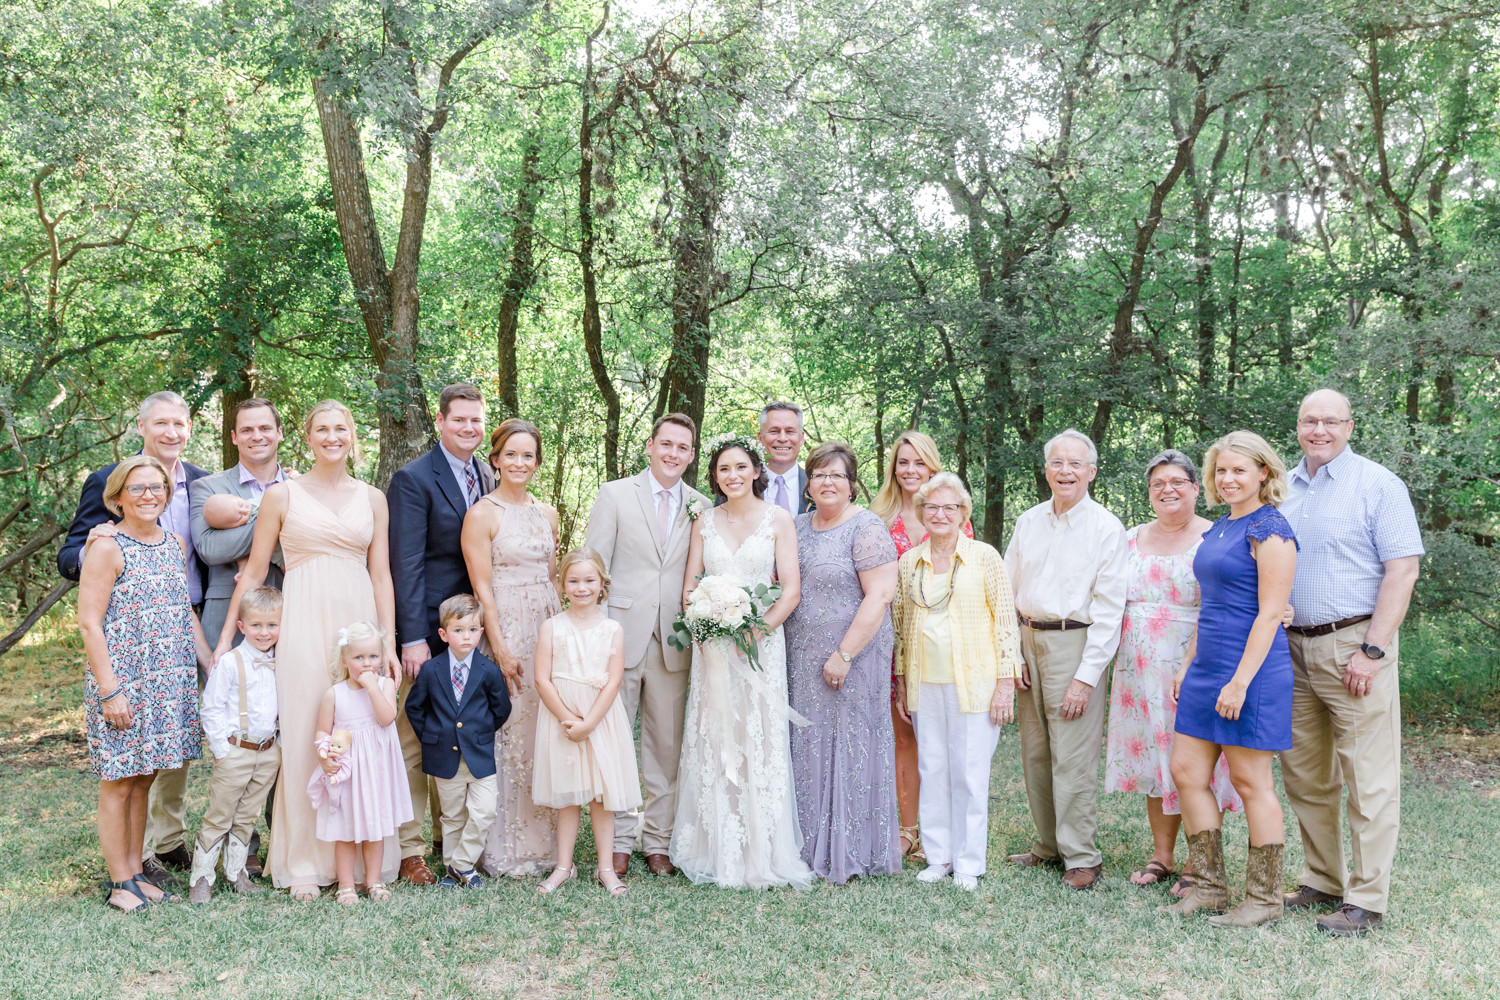 San Antonio Texas Wedding Engagement Photographer Photography Hill Country Texas Old Town Red Bud Hall Summer Blush Ivory Tan Rustic Classic Elegant Wedding San Antonio Austin Texas photographer 39